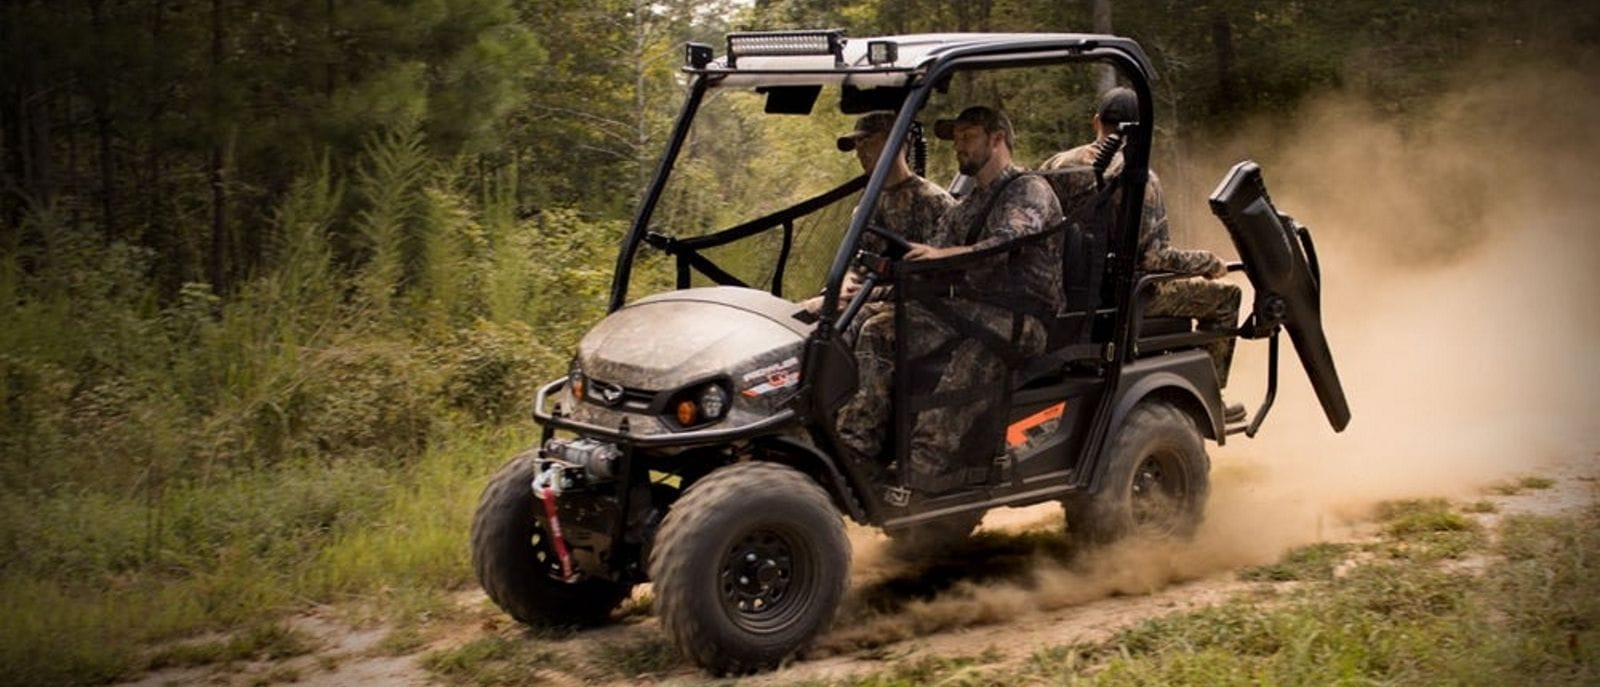 Golf Car World | Textron Off Road Vehicles | Western Australia, Northern Territory, Indian Ocean